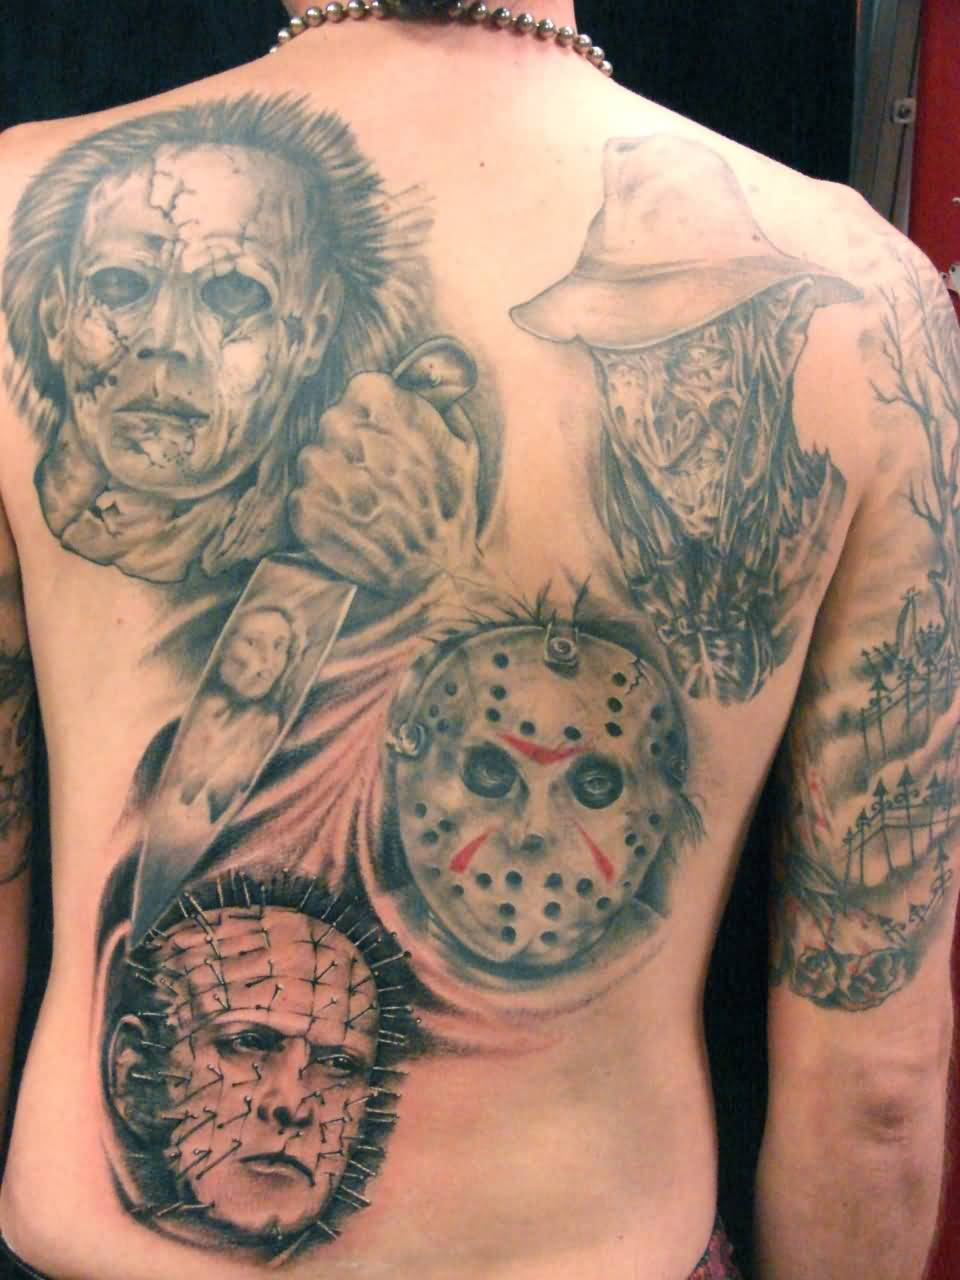 Scary Faces With Pinhead Tattoo On Men Full Back